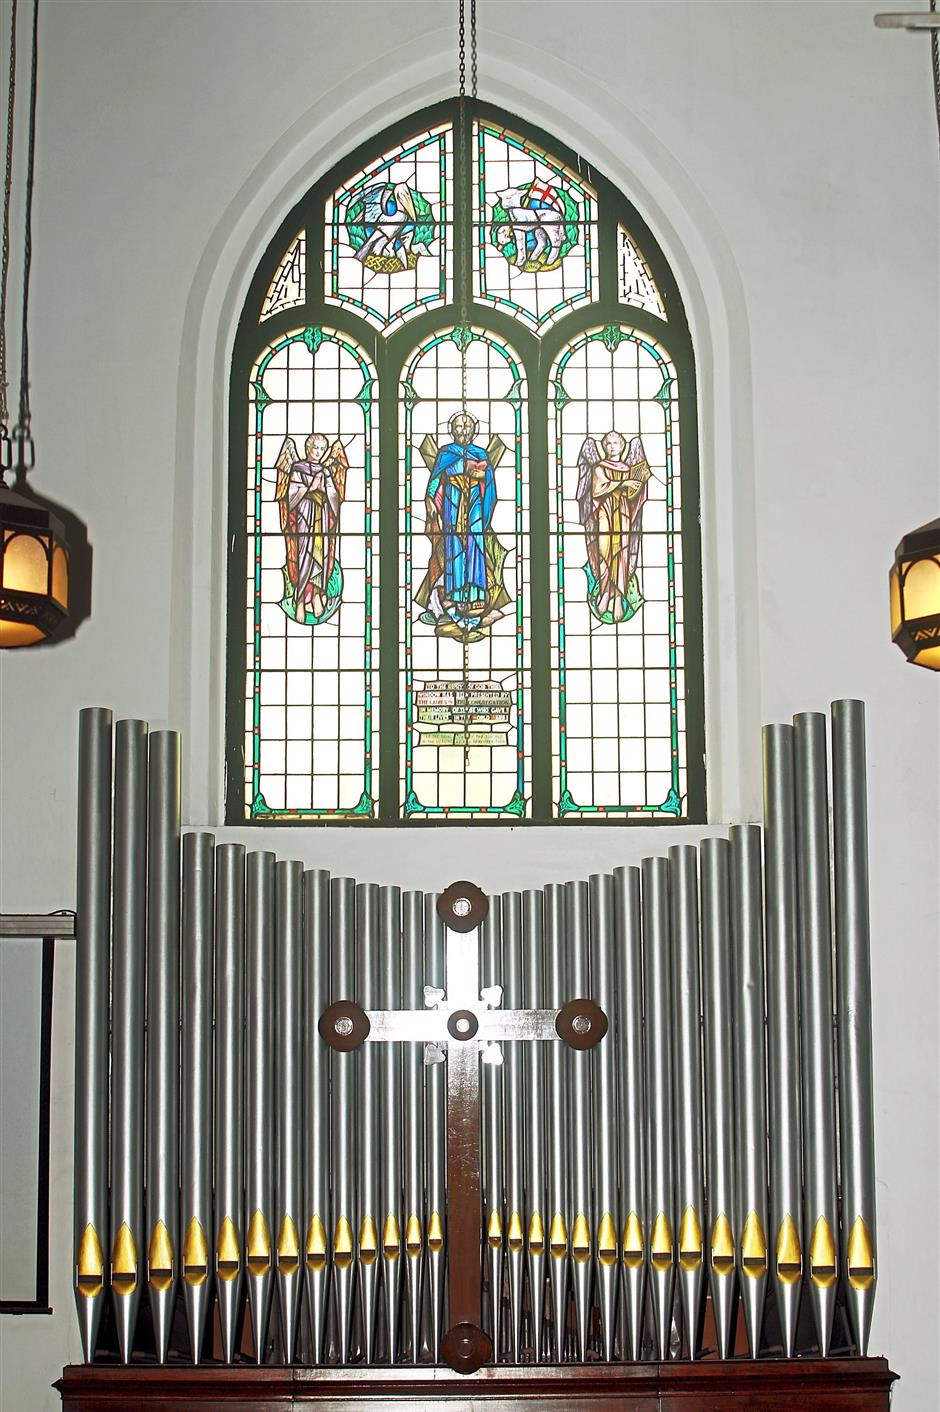 The arched stained glass